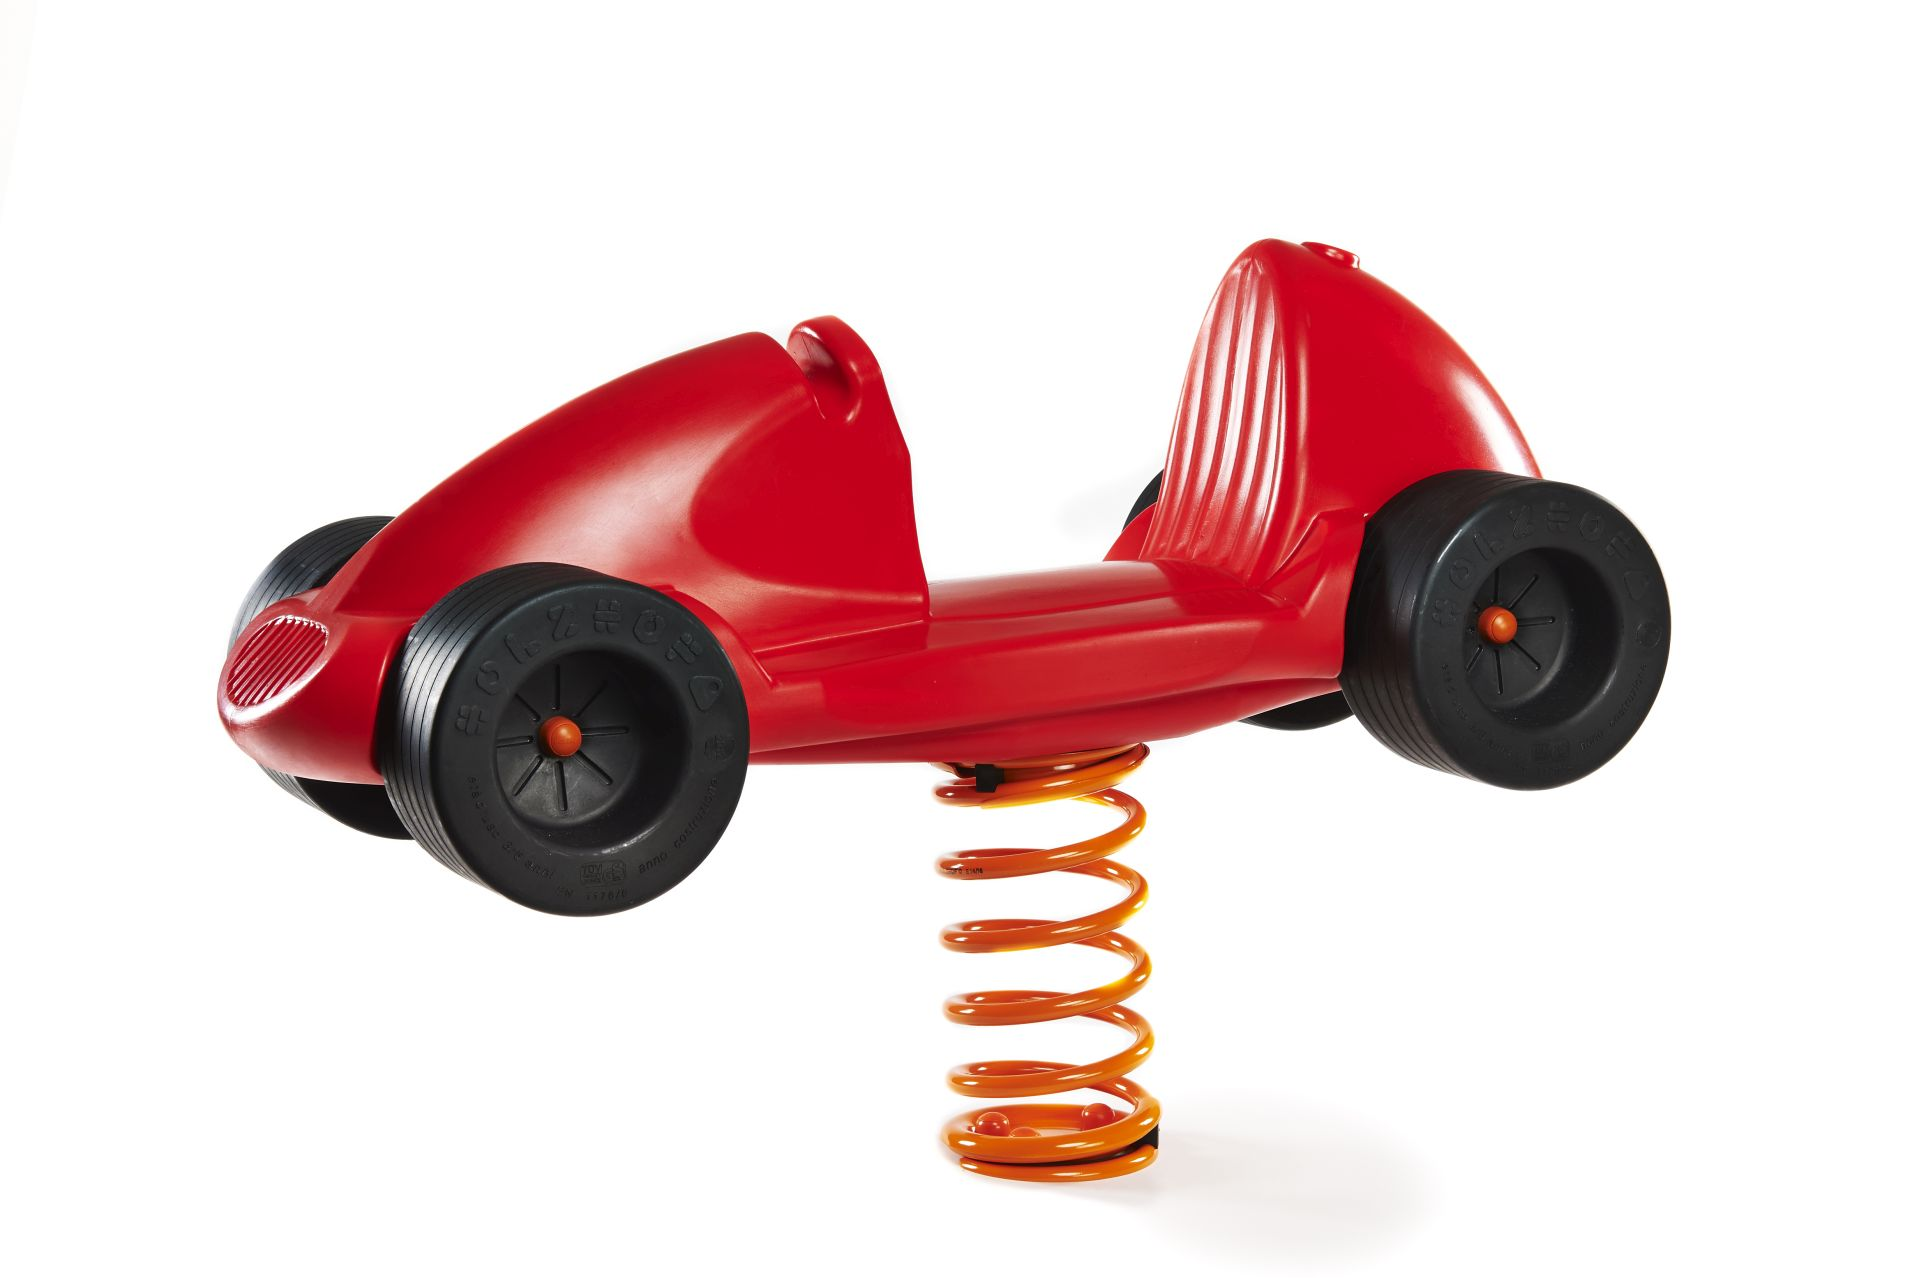 Holzhof Spring riders Race Car spring rider, red, polyethylene with basement for underground installation